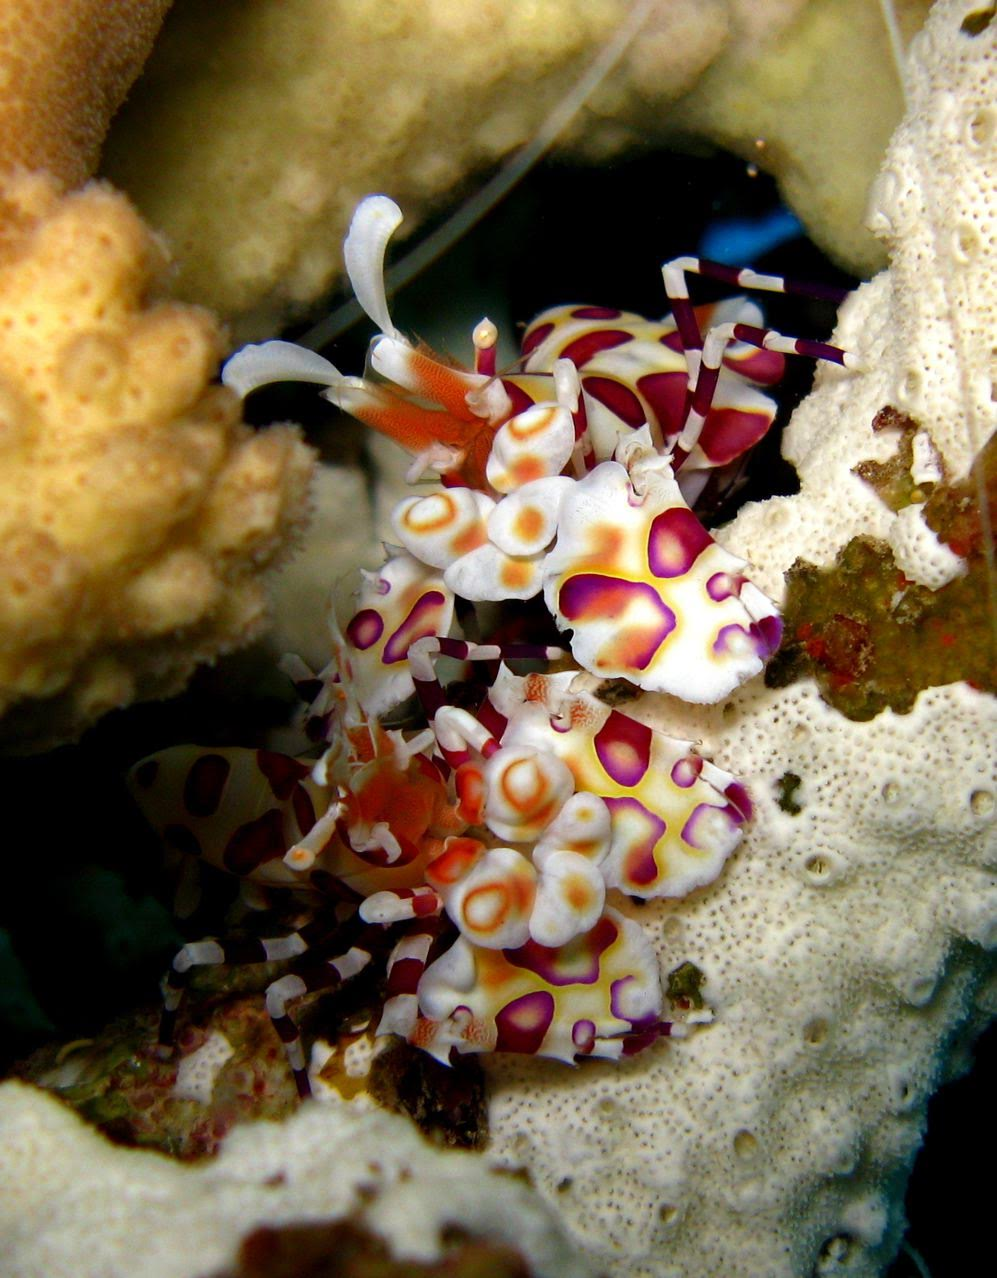 5 Caves – Harlequin Shrimp